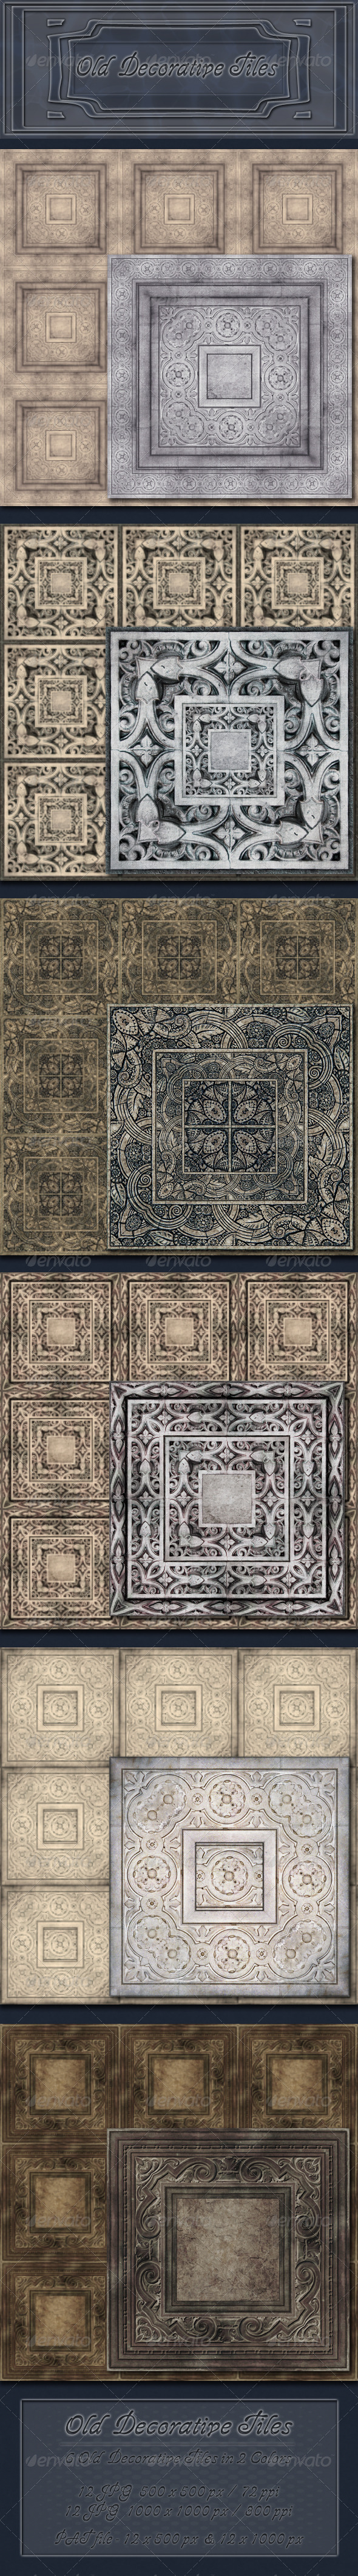 GraphicRiver Old Decorative Tiles 2623067